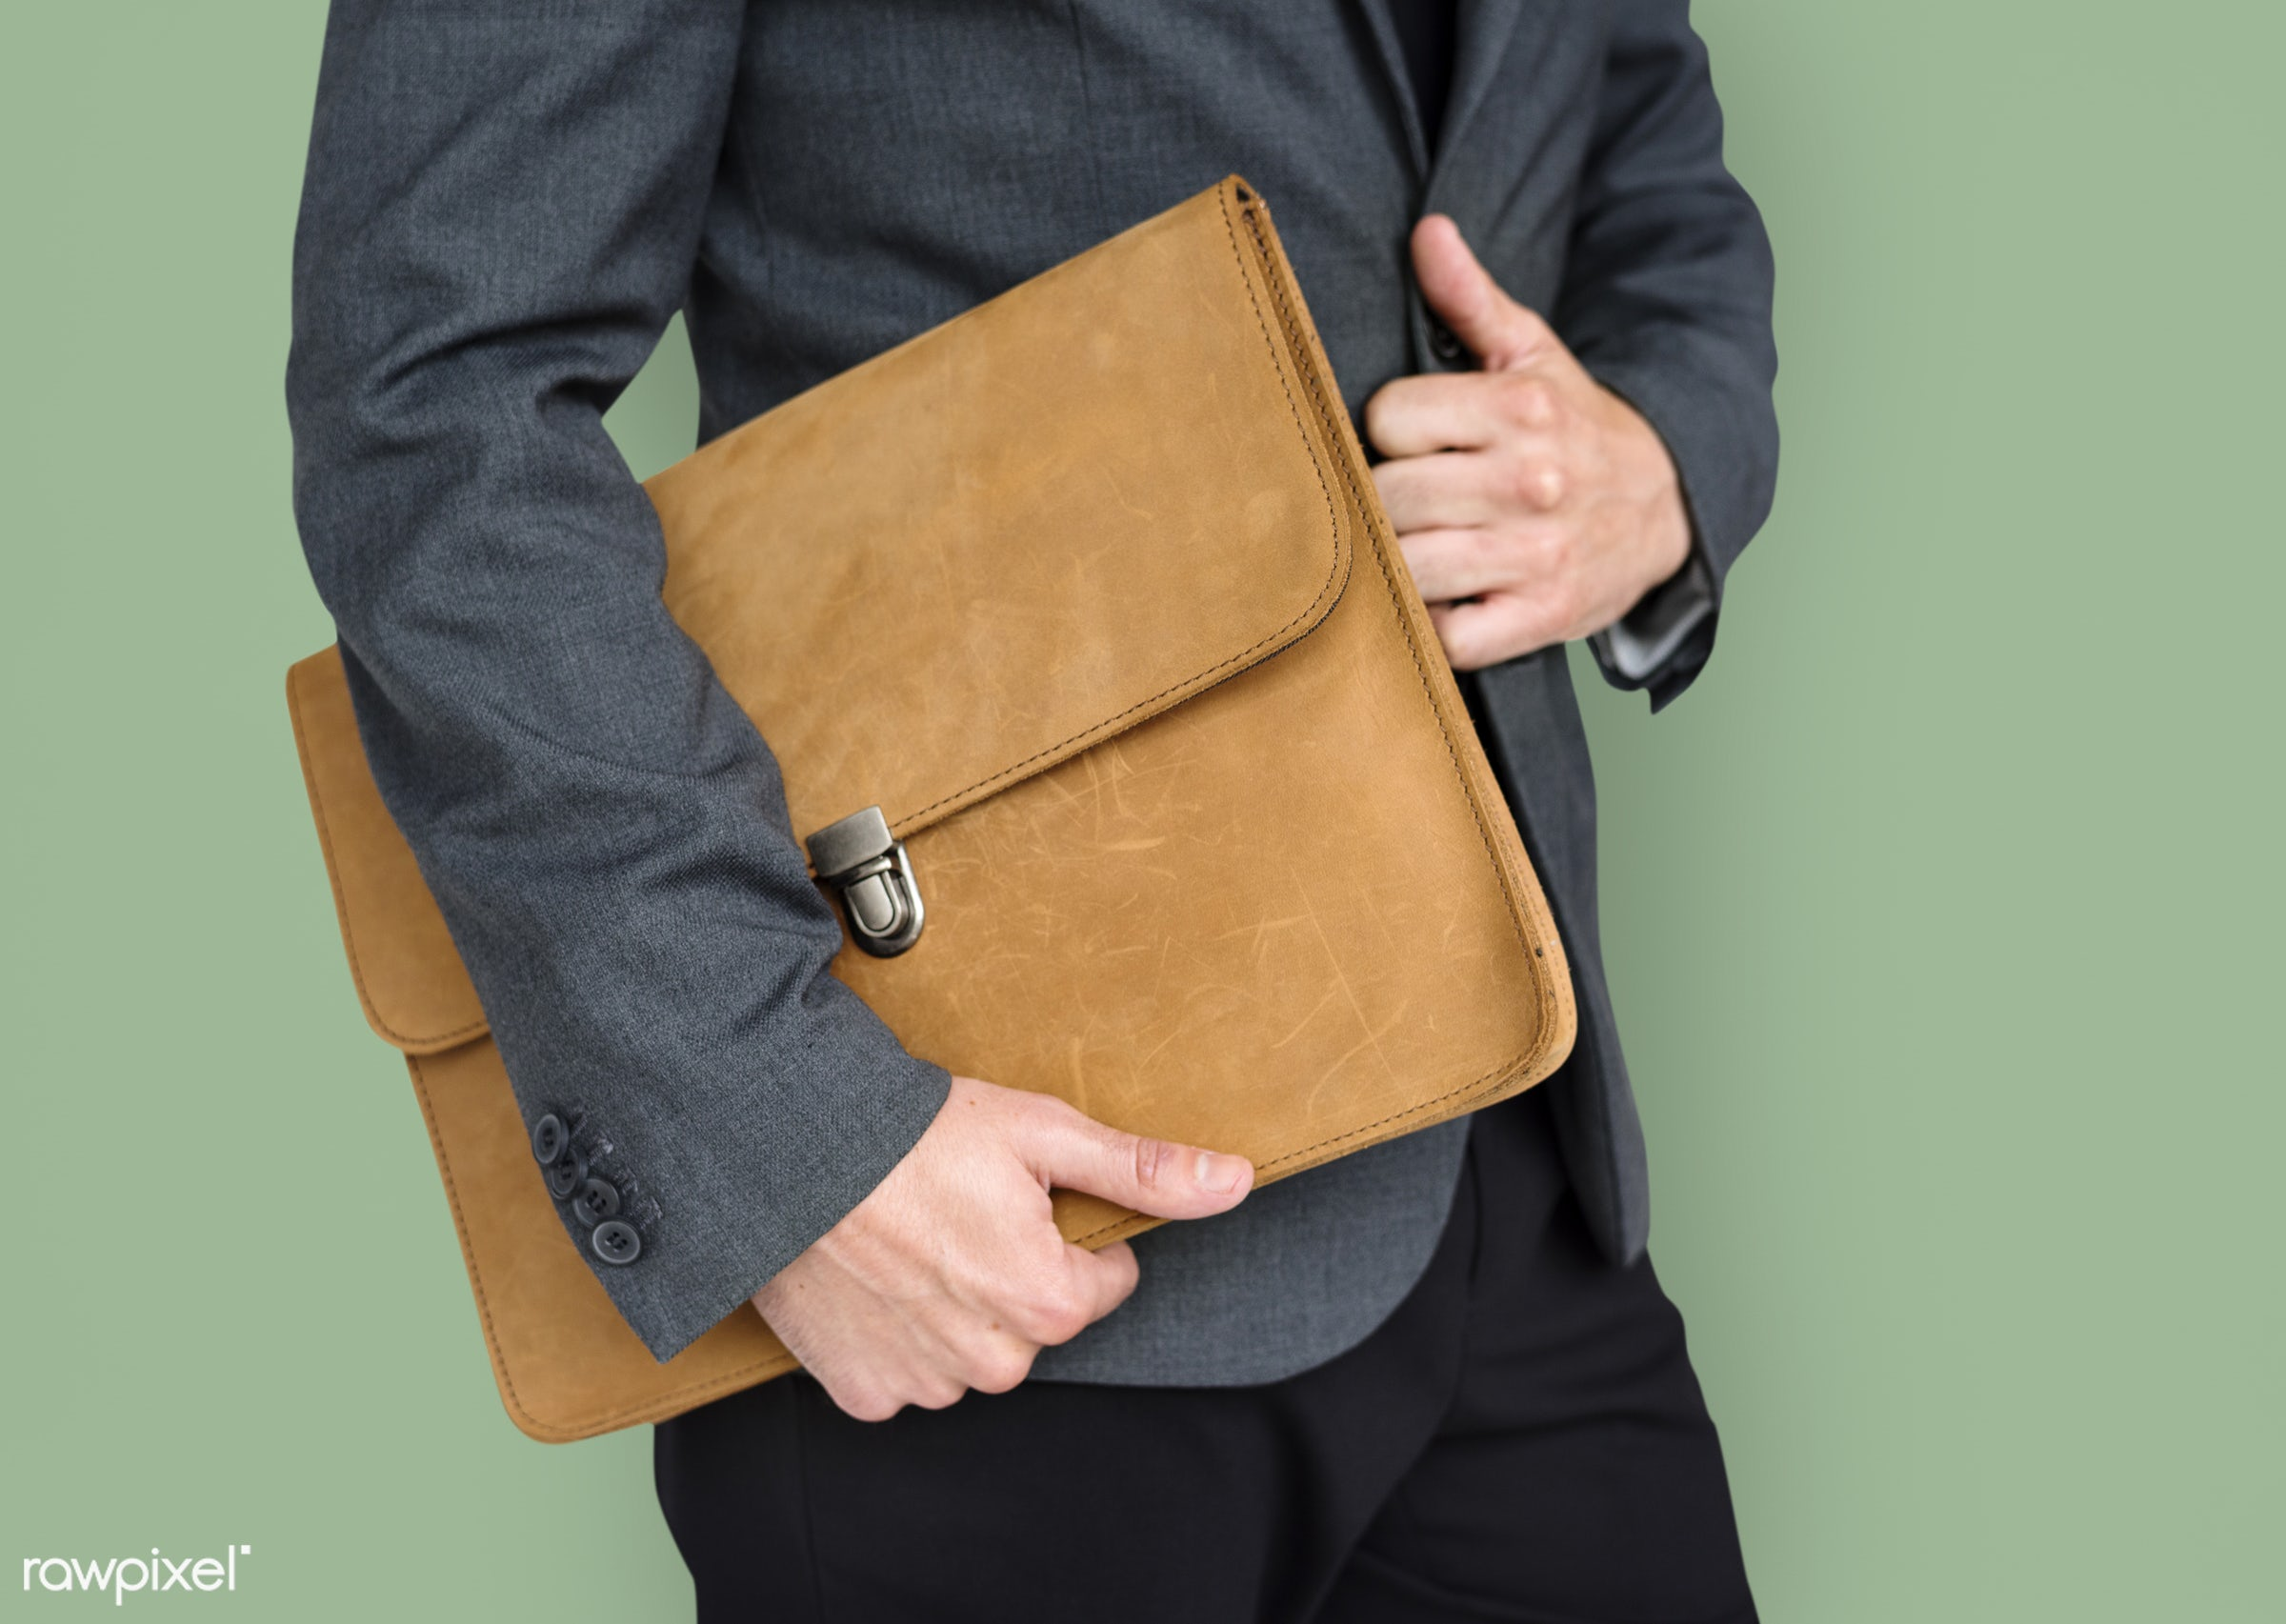 expression, studio, person, business wear, holding, messenger bag, folder bag, people, business, hands, man, strapless, work...